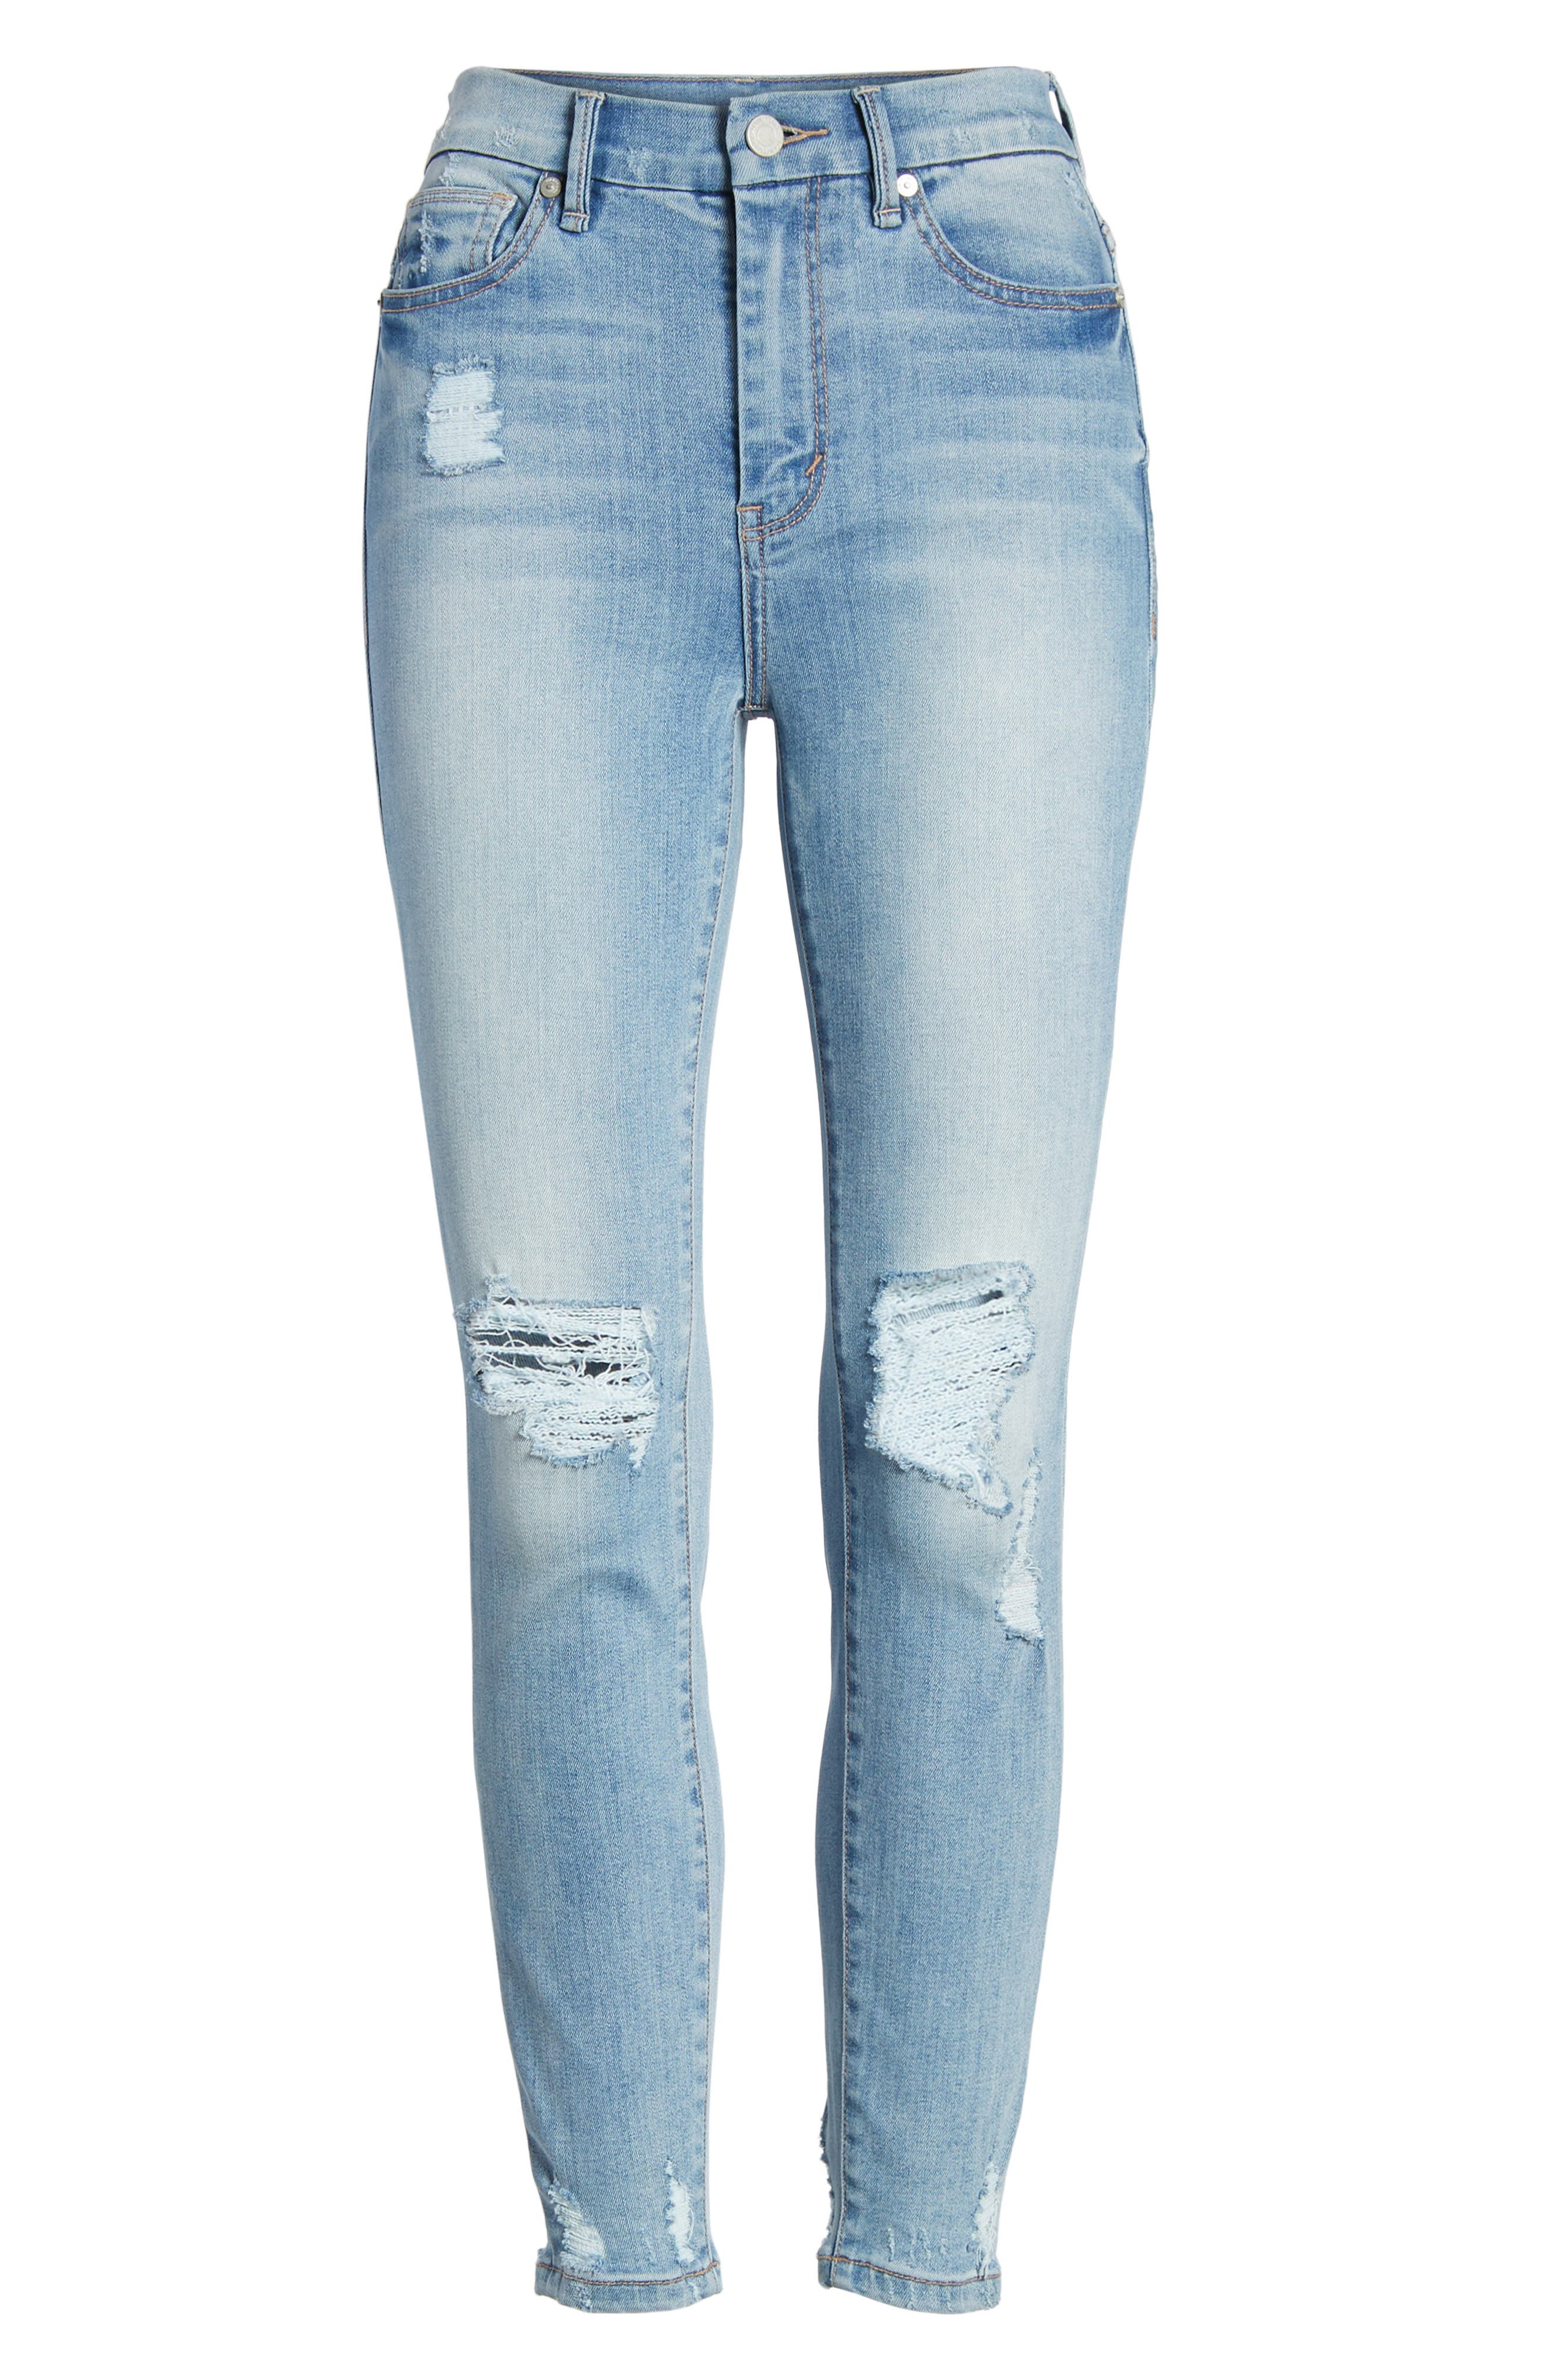 Cressa High Rise Ankle Skinny Jeans,                             Alternate thumbnail 7, color,                             Varnish